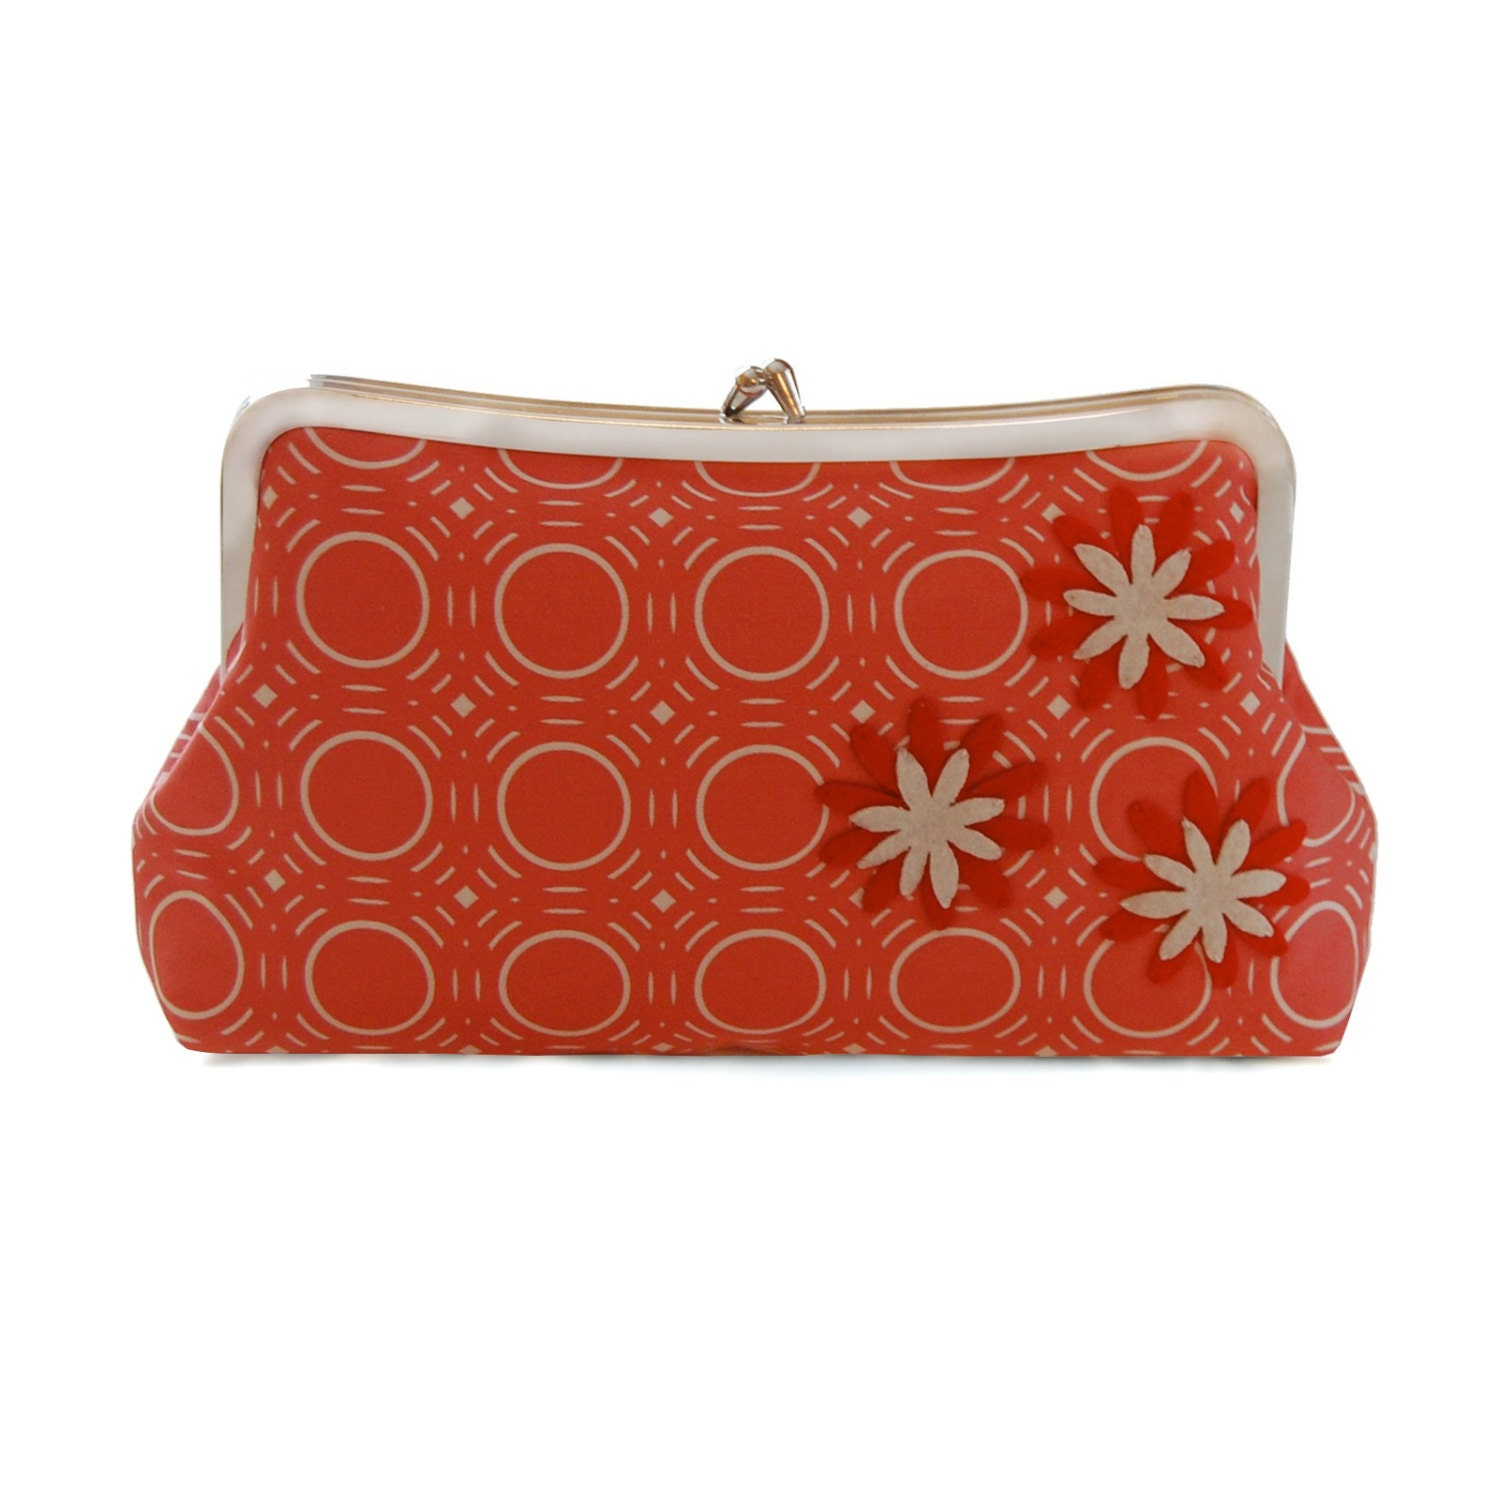 Red Clutch Purse Red Floral Clutch Geometric Clutch